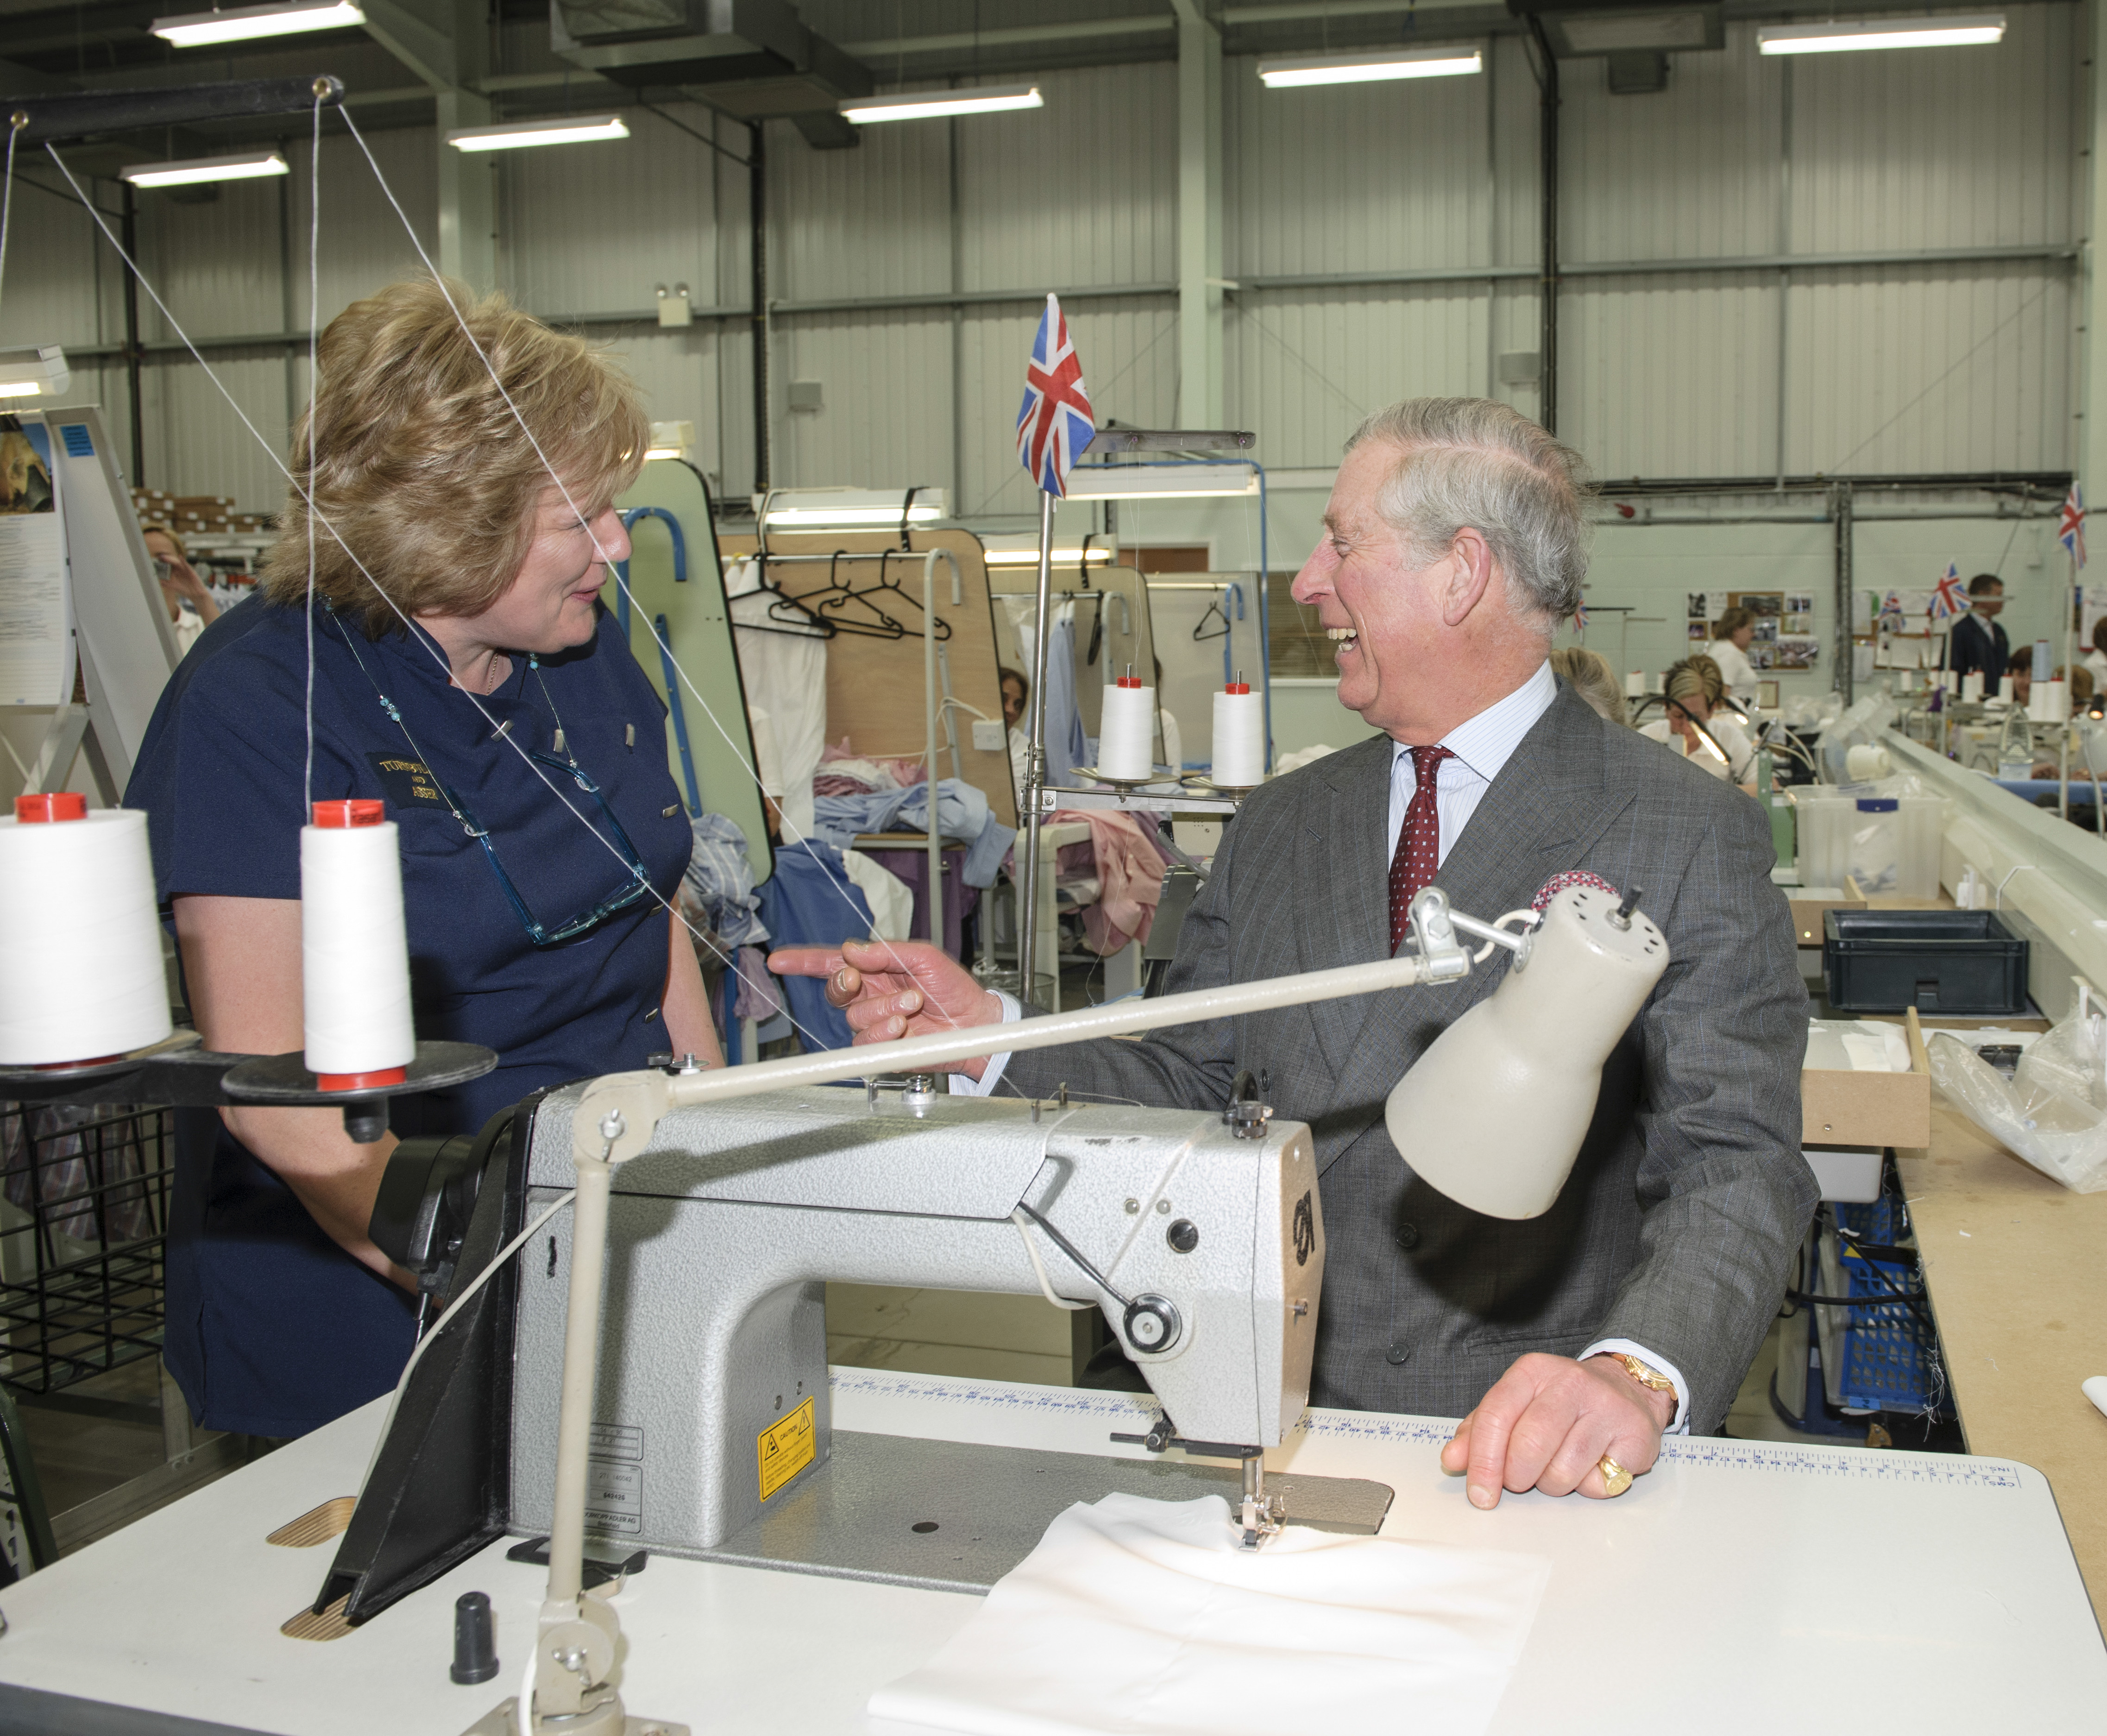 Prince Charles visits Turnbull & Asser